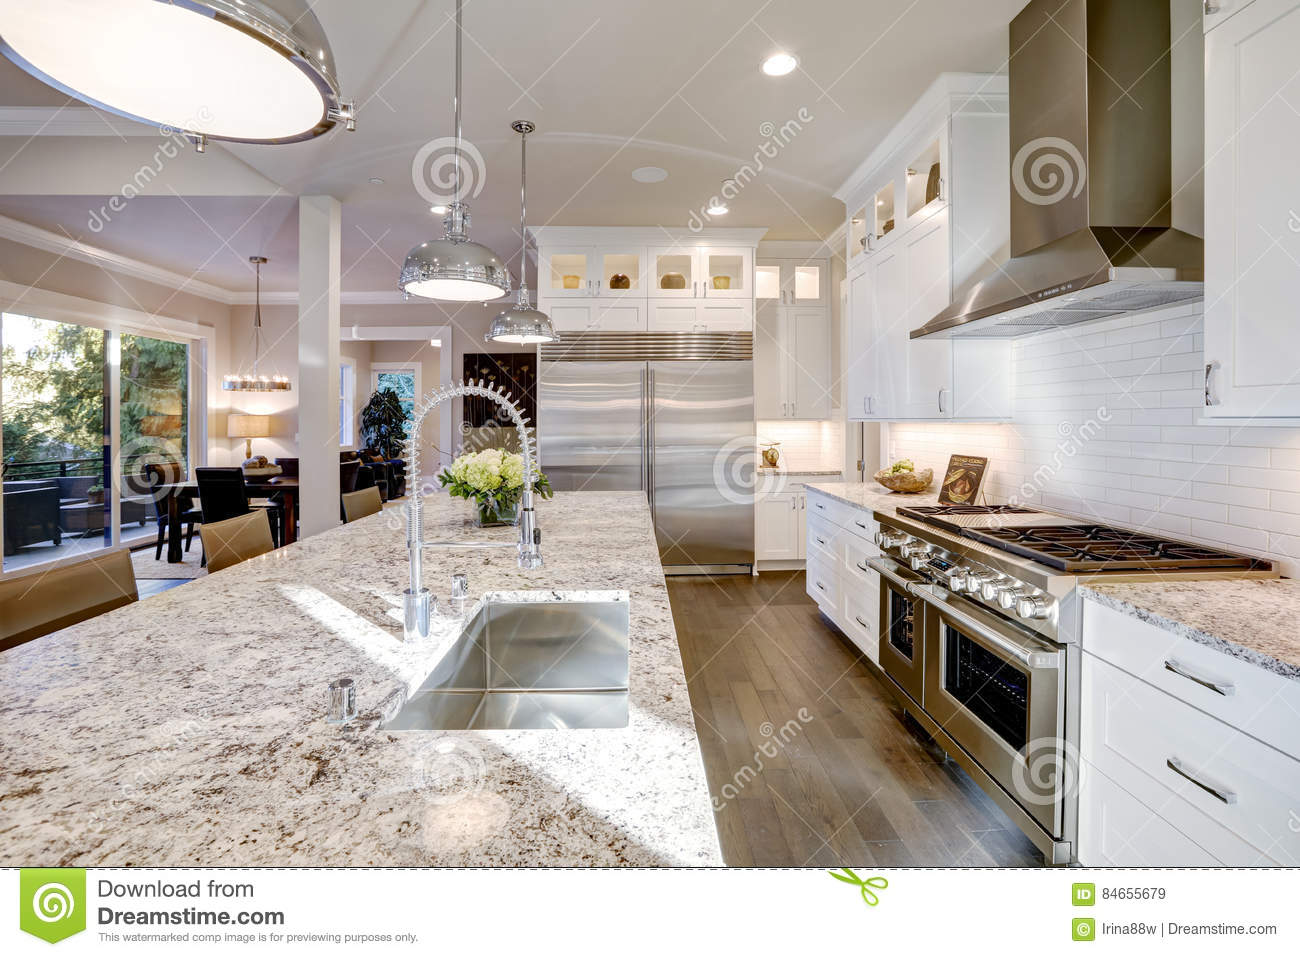 White Kitchen Design In New Luxurious Home Stock Image Image Of Interior Large 84655679